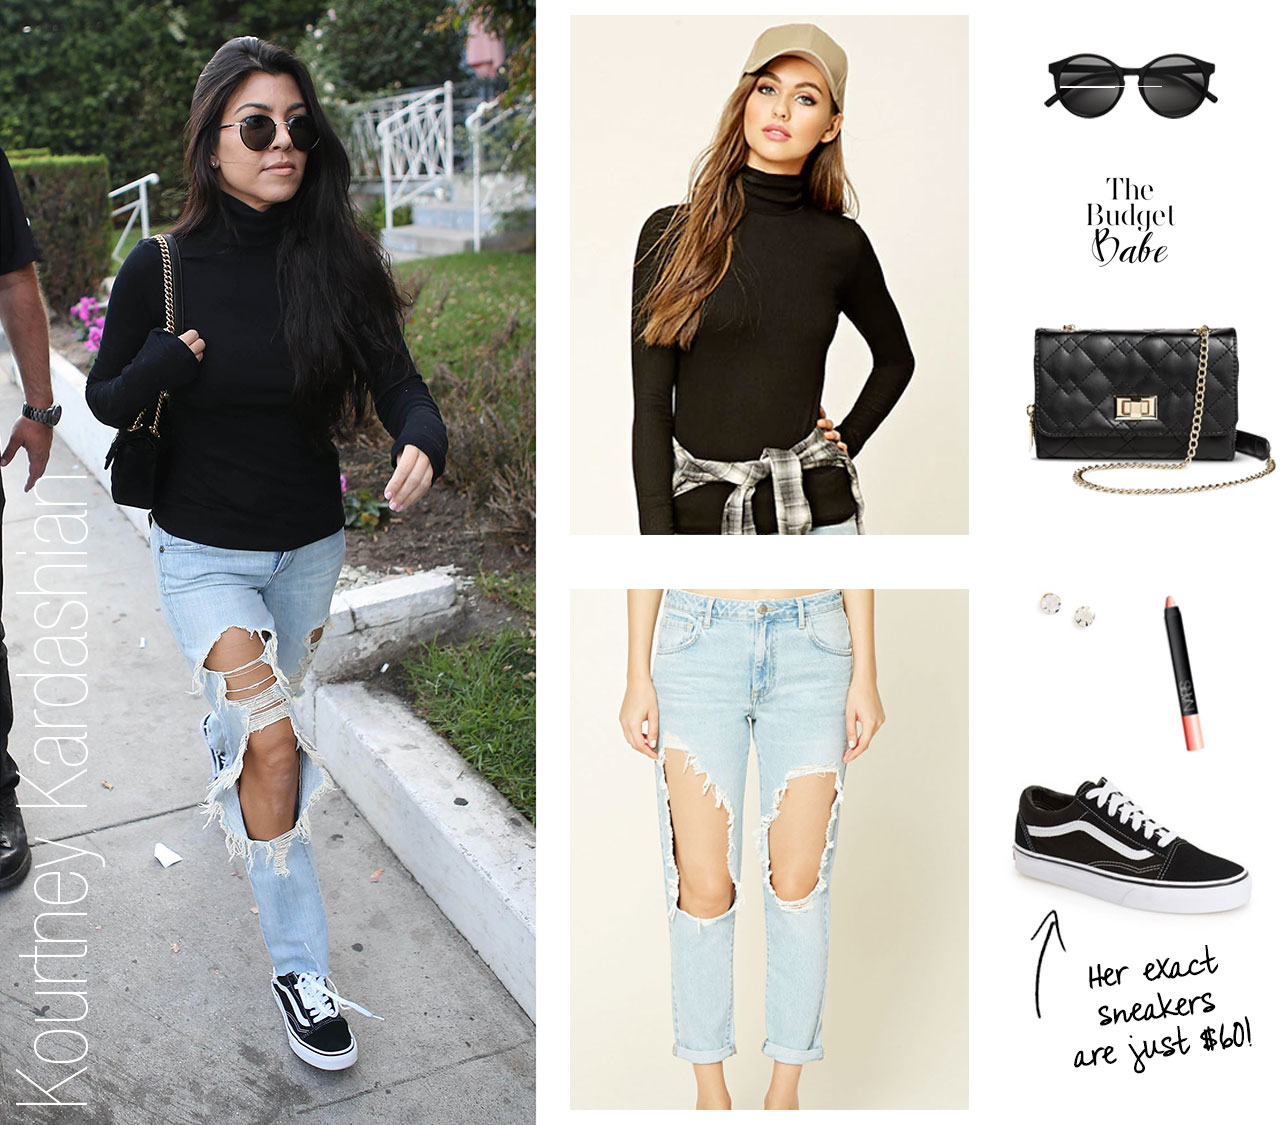 Shop Kourtney Kardashian's turtleneck top and destroyed jeans look for less.